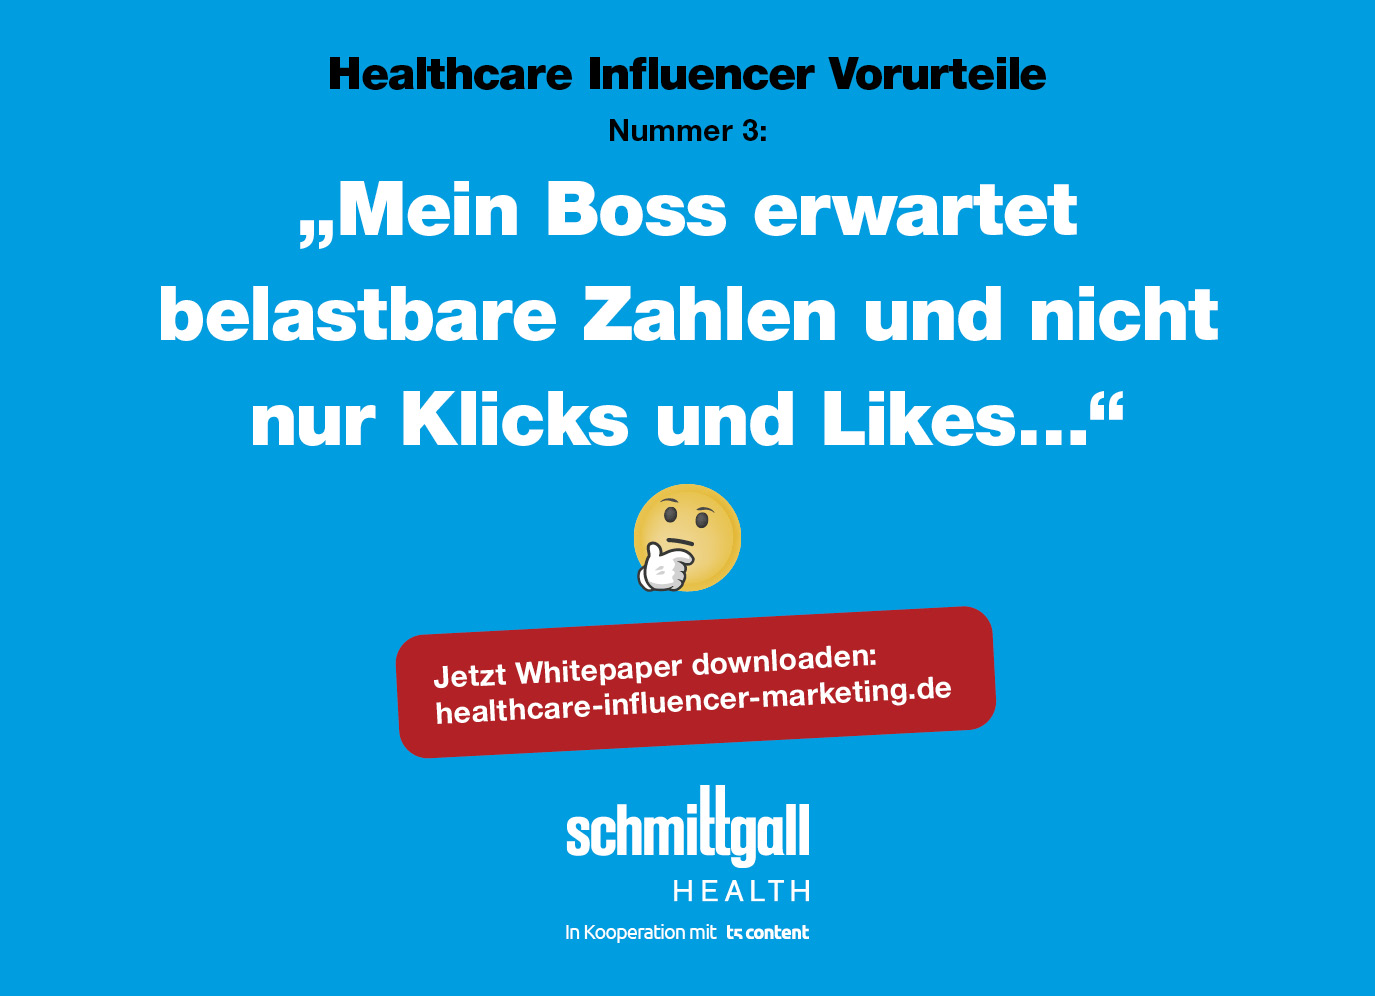 Influencer-Vorurteil-3-Boss-Klicks_likes